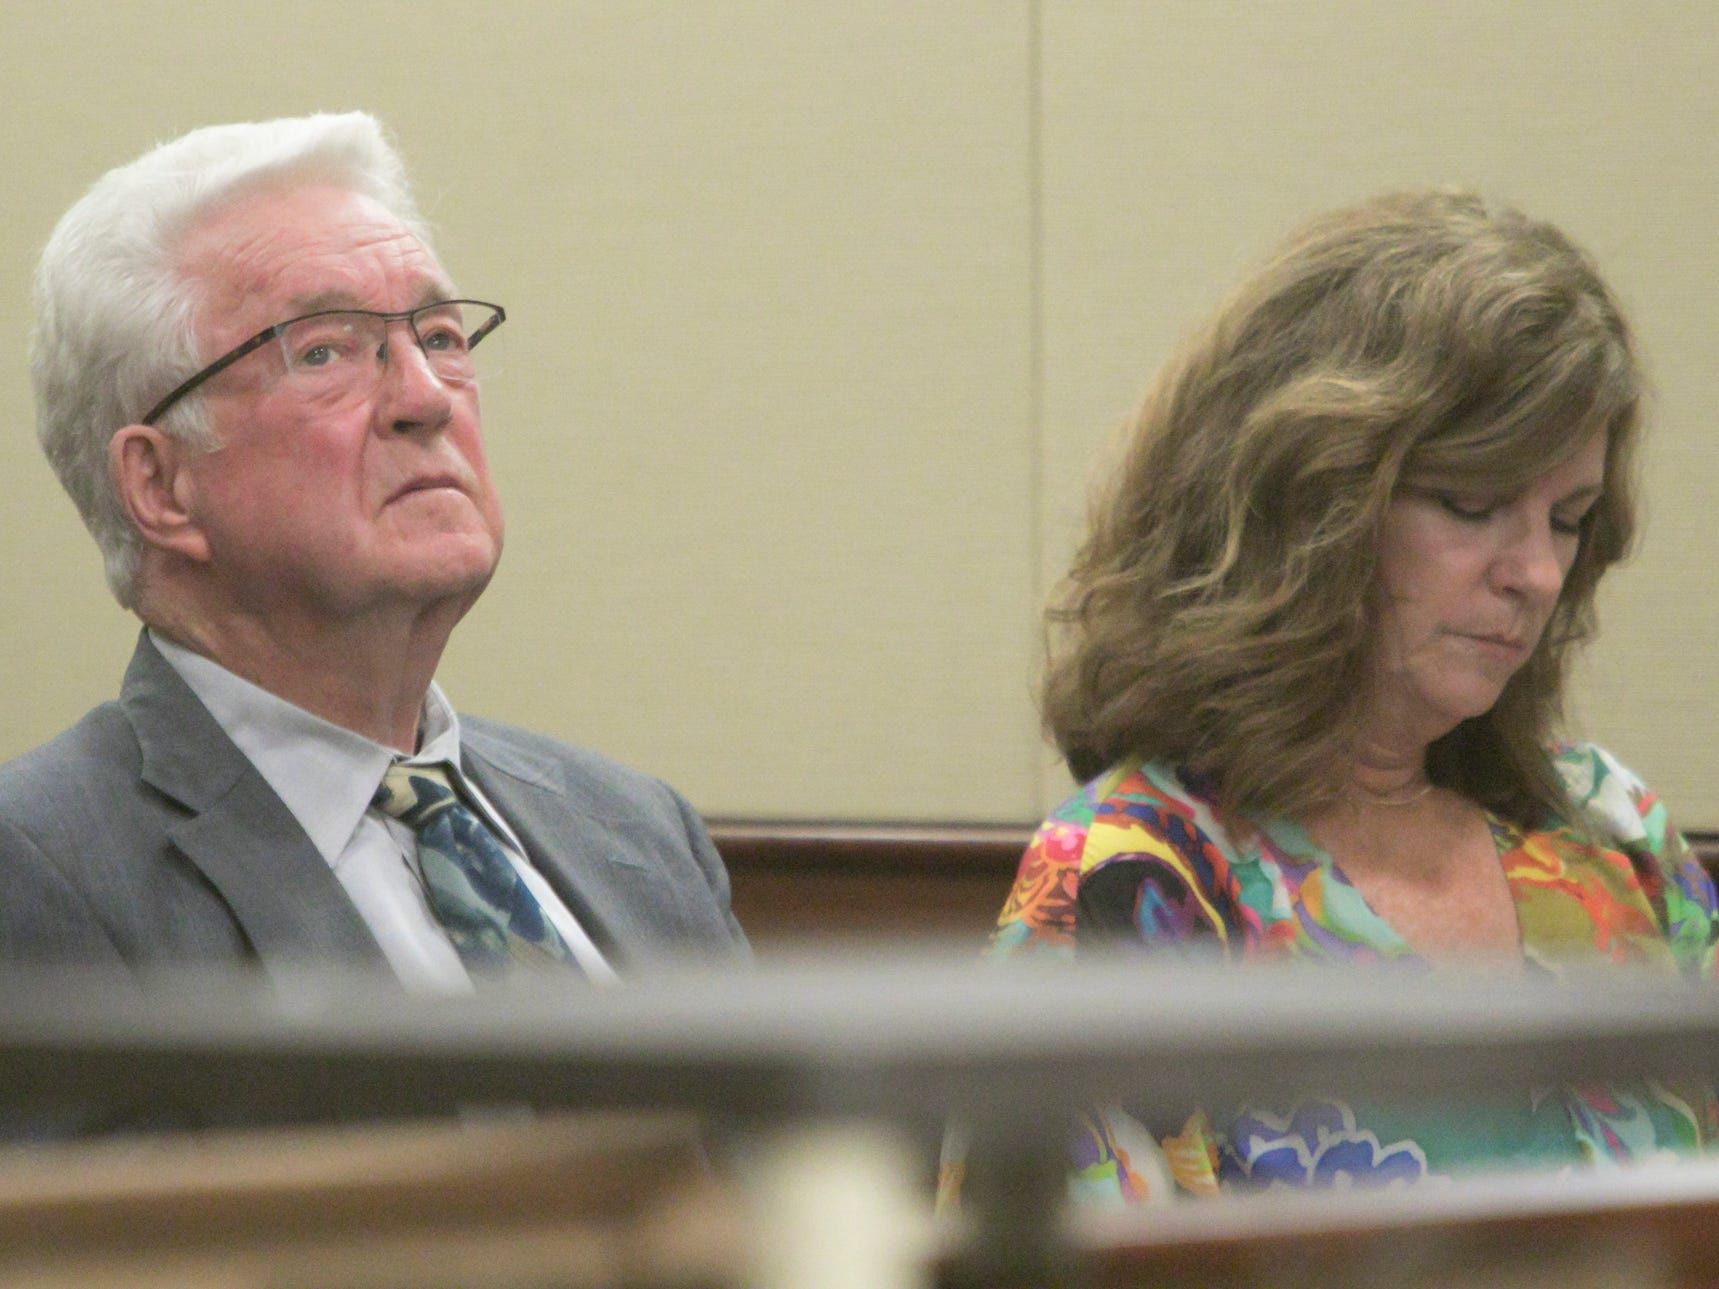 Judge Theresa Brennan's father, retired attorney John Brennan, and the judge's sister Denise Brennan-Nelson, listen  Monday, Oct. 8, 2018 during day 6 of her Judicial Tenure Commission misconduct hearing.